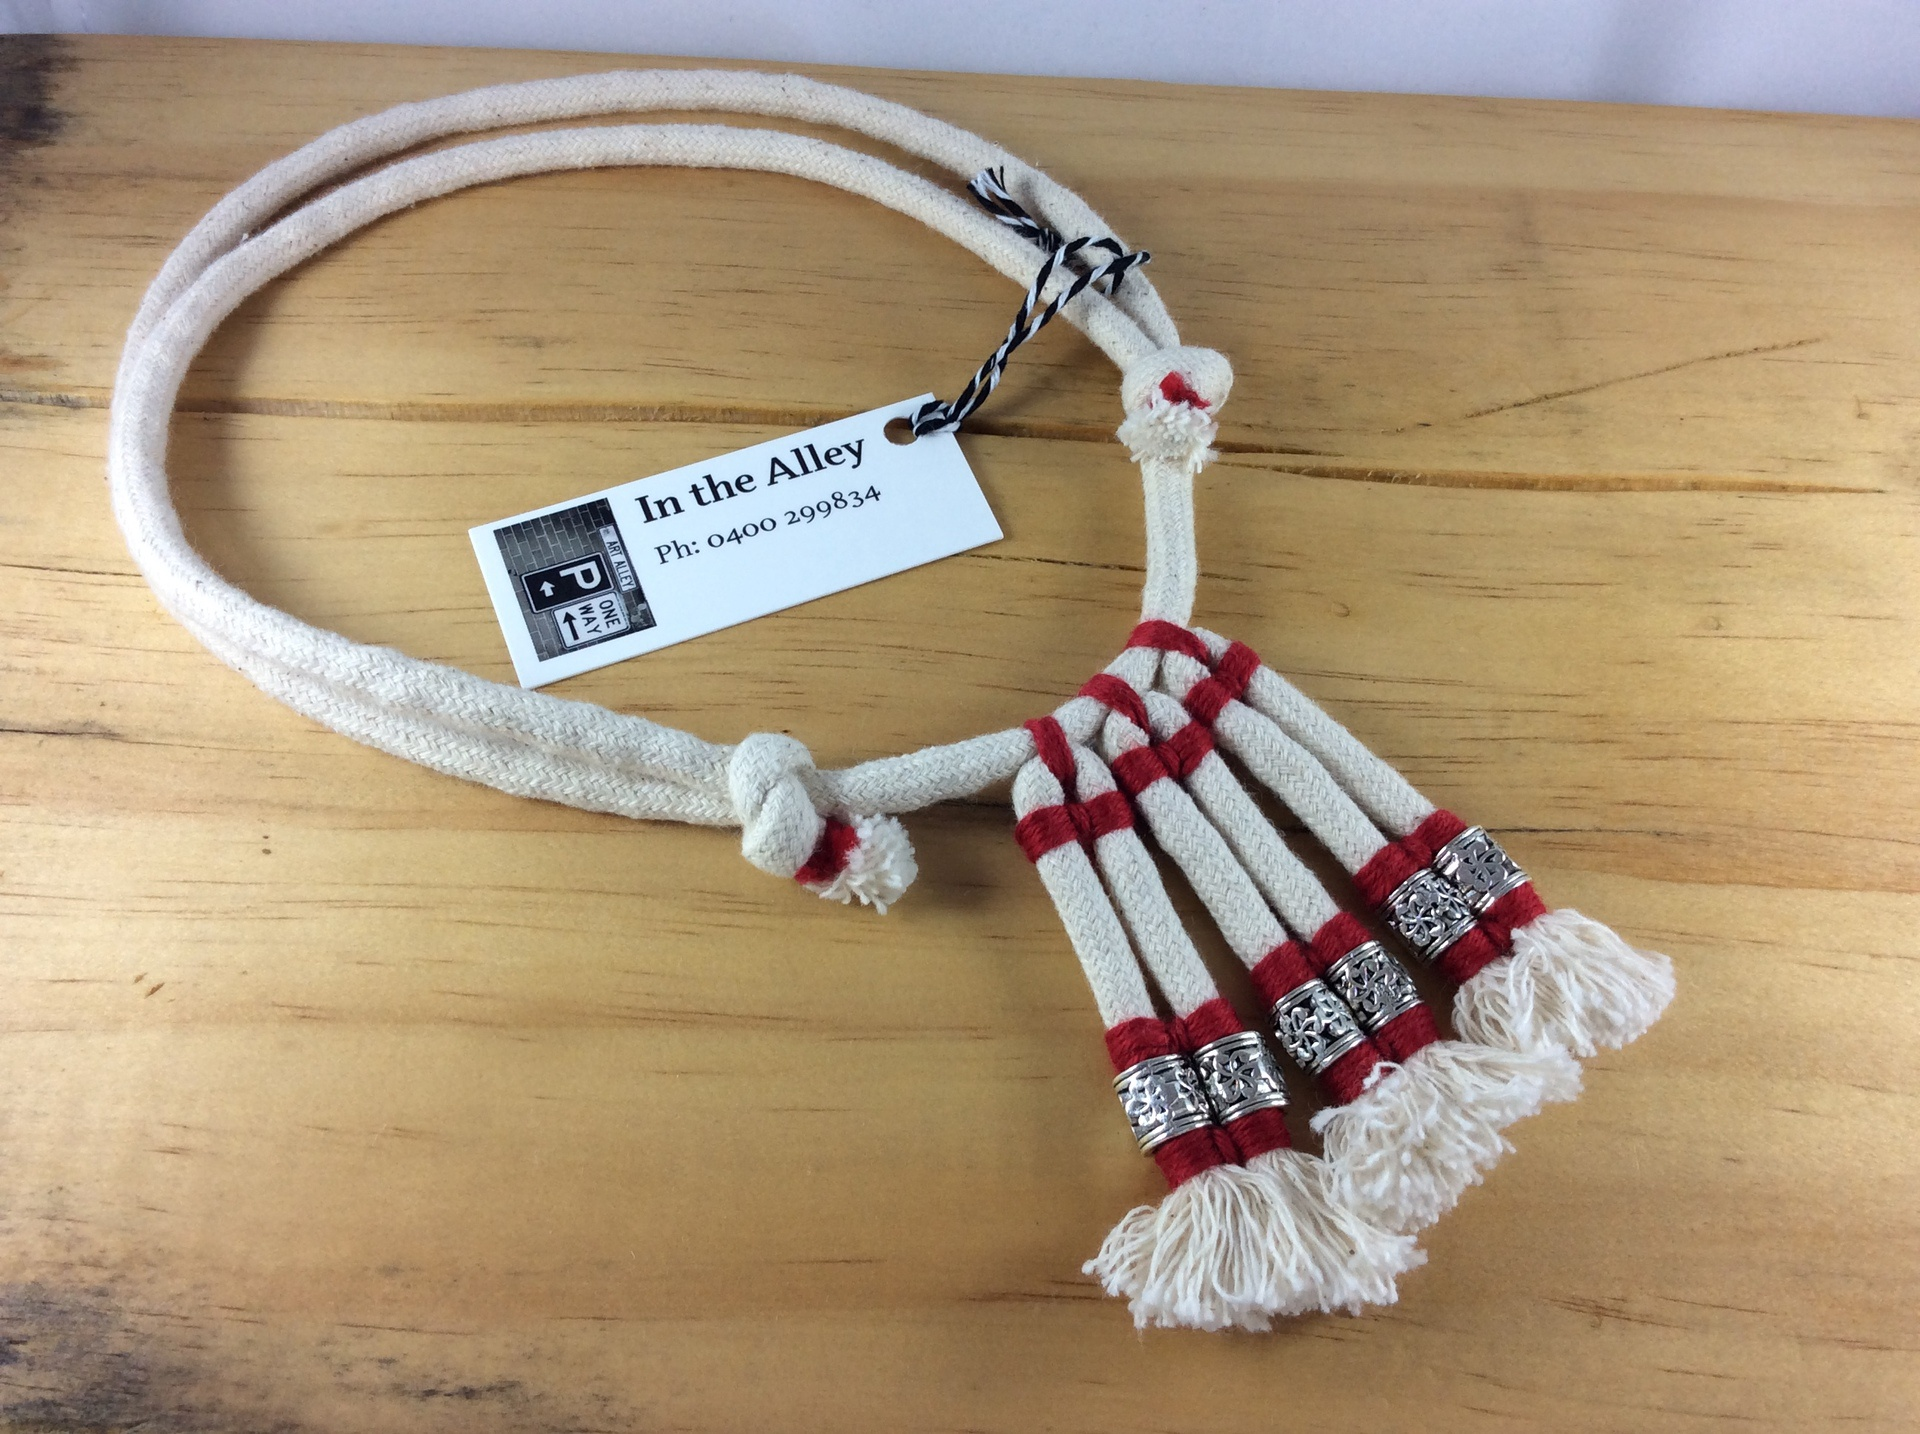 Syx Frayed Lines 'The Original' Frayed Cotton Rope Necklace in Mars Red